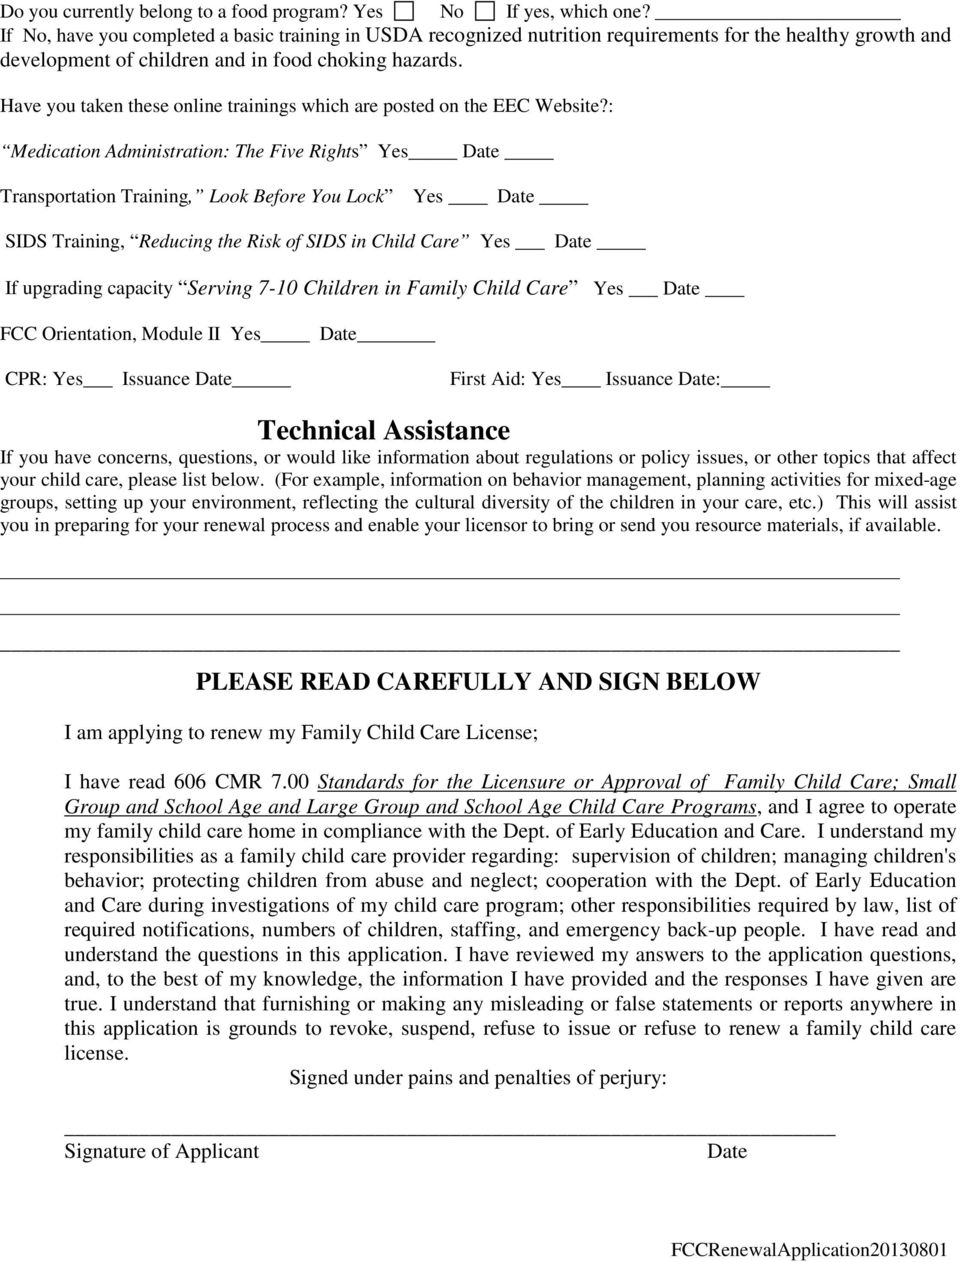 Family Child Care License Renewal